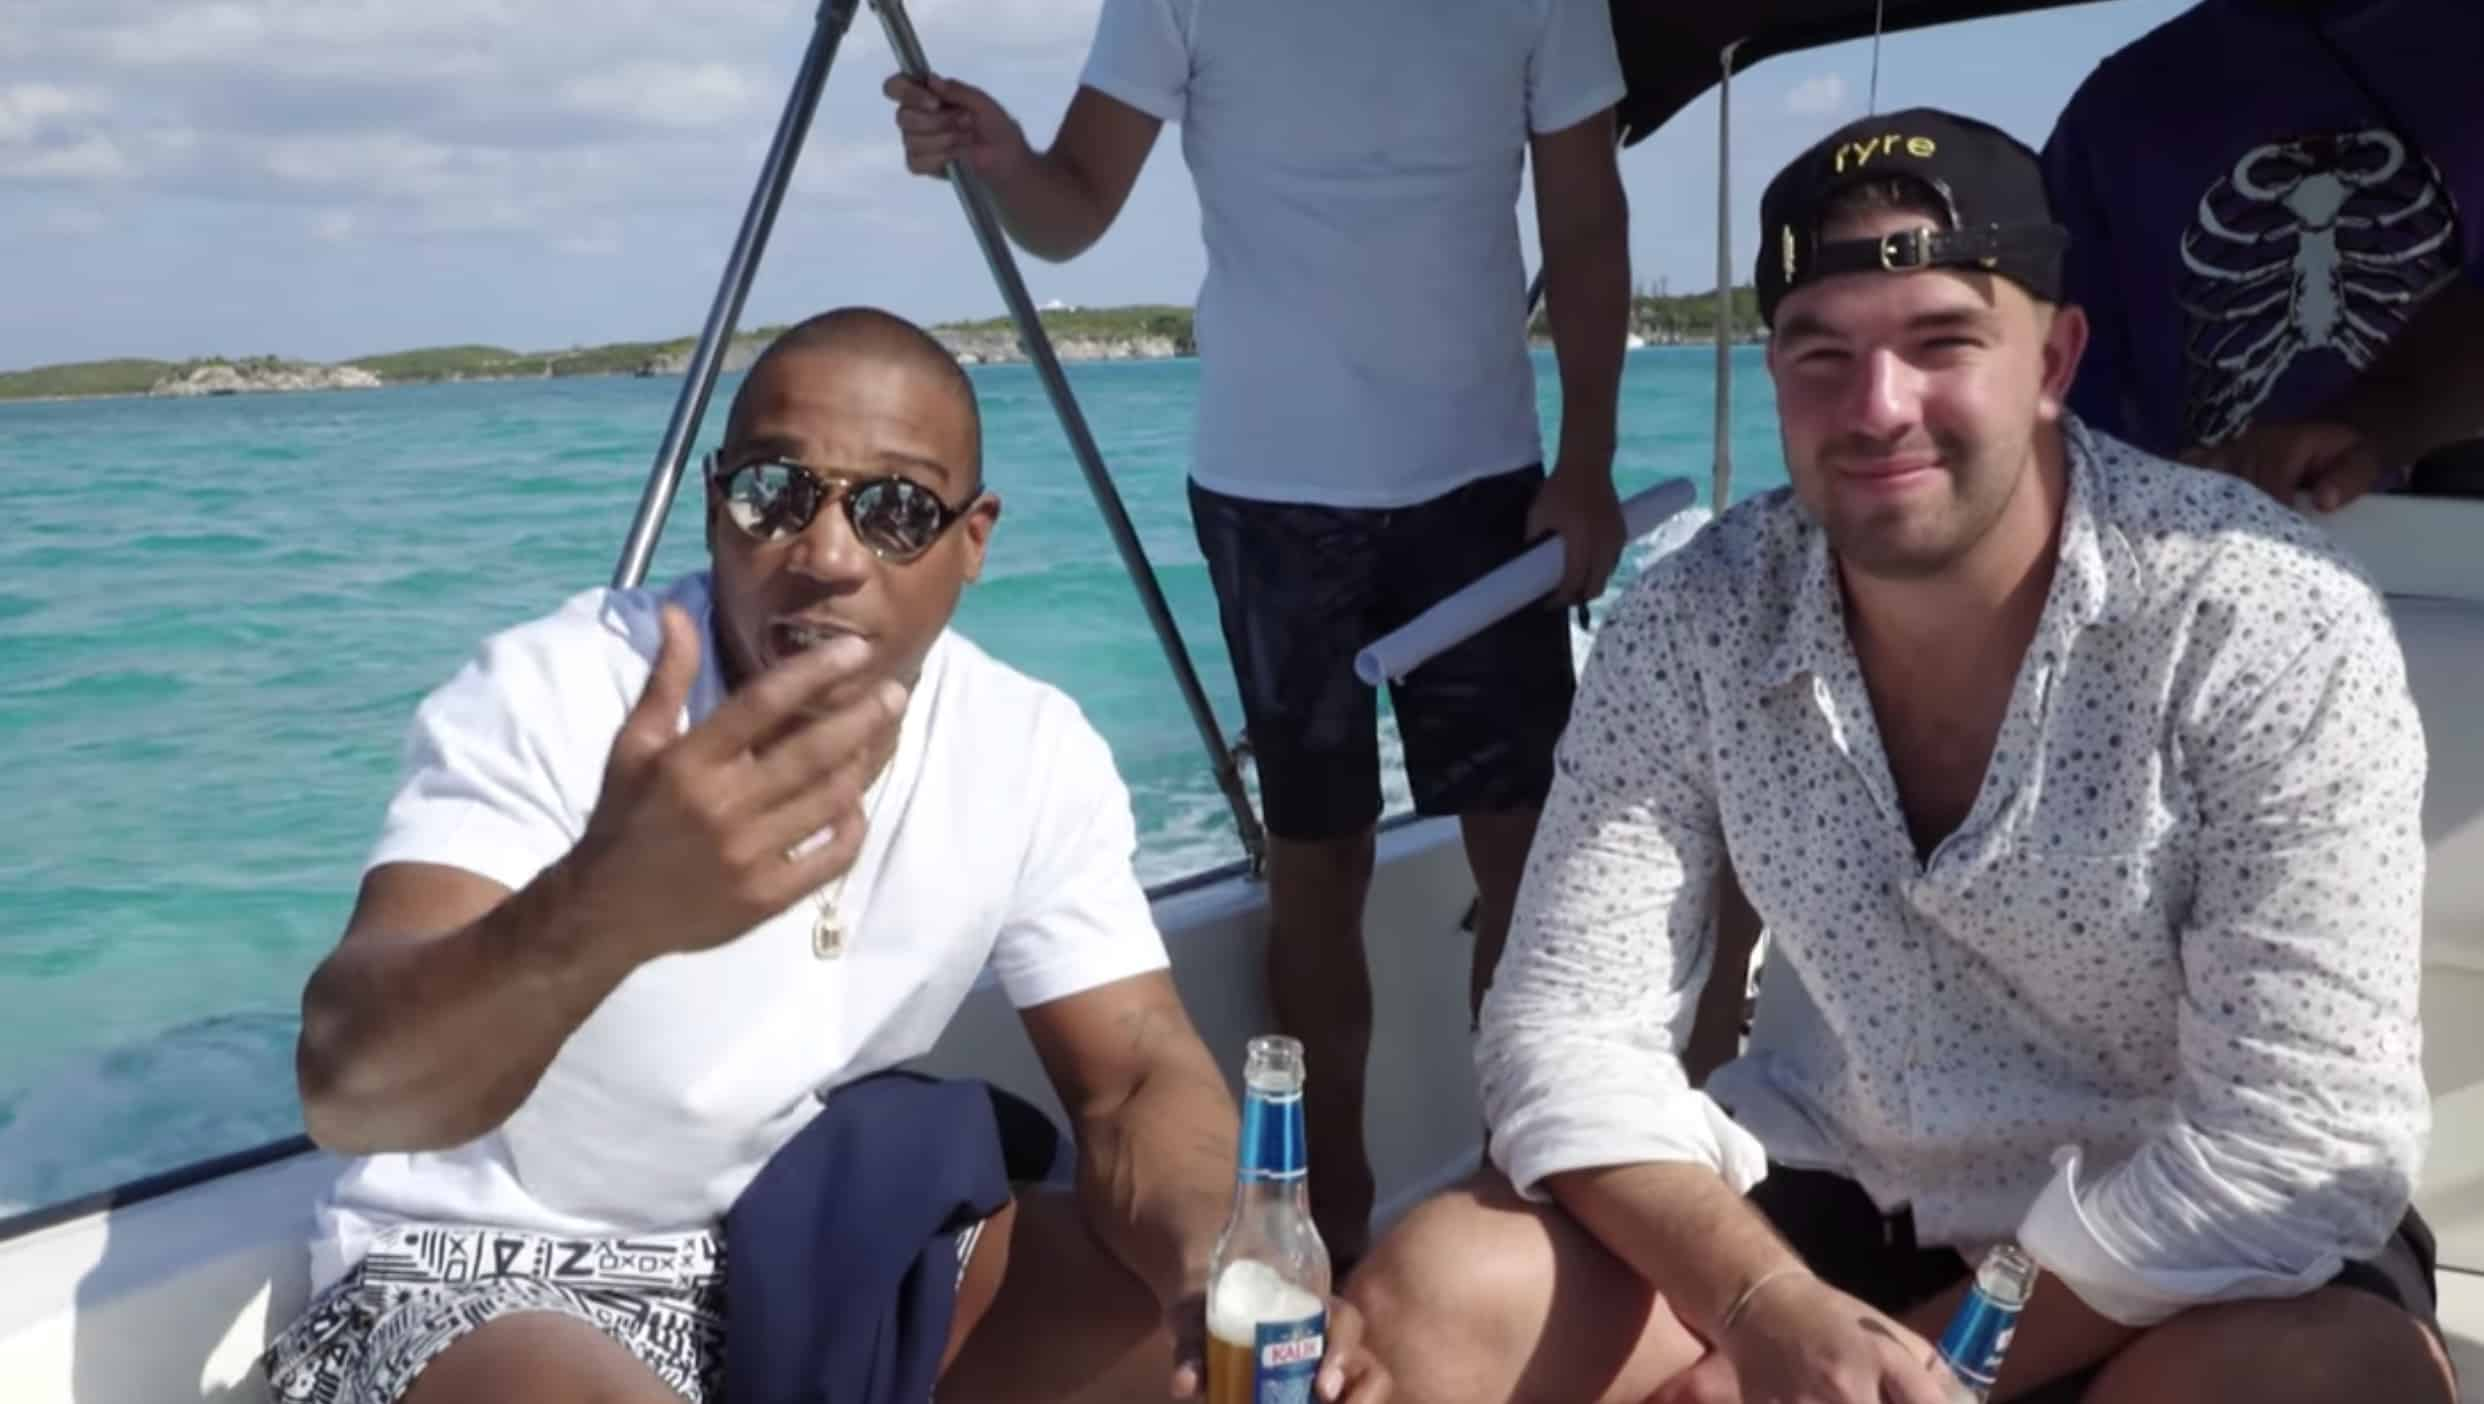 Fyre a sad, but not surprising indictment of influencer culture ...